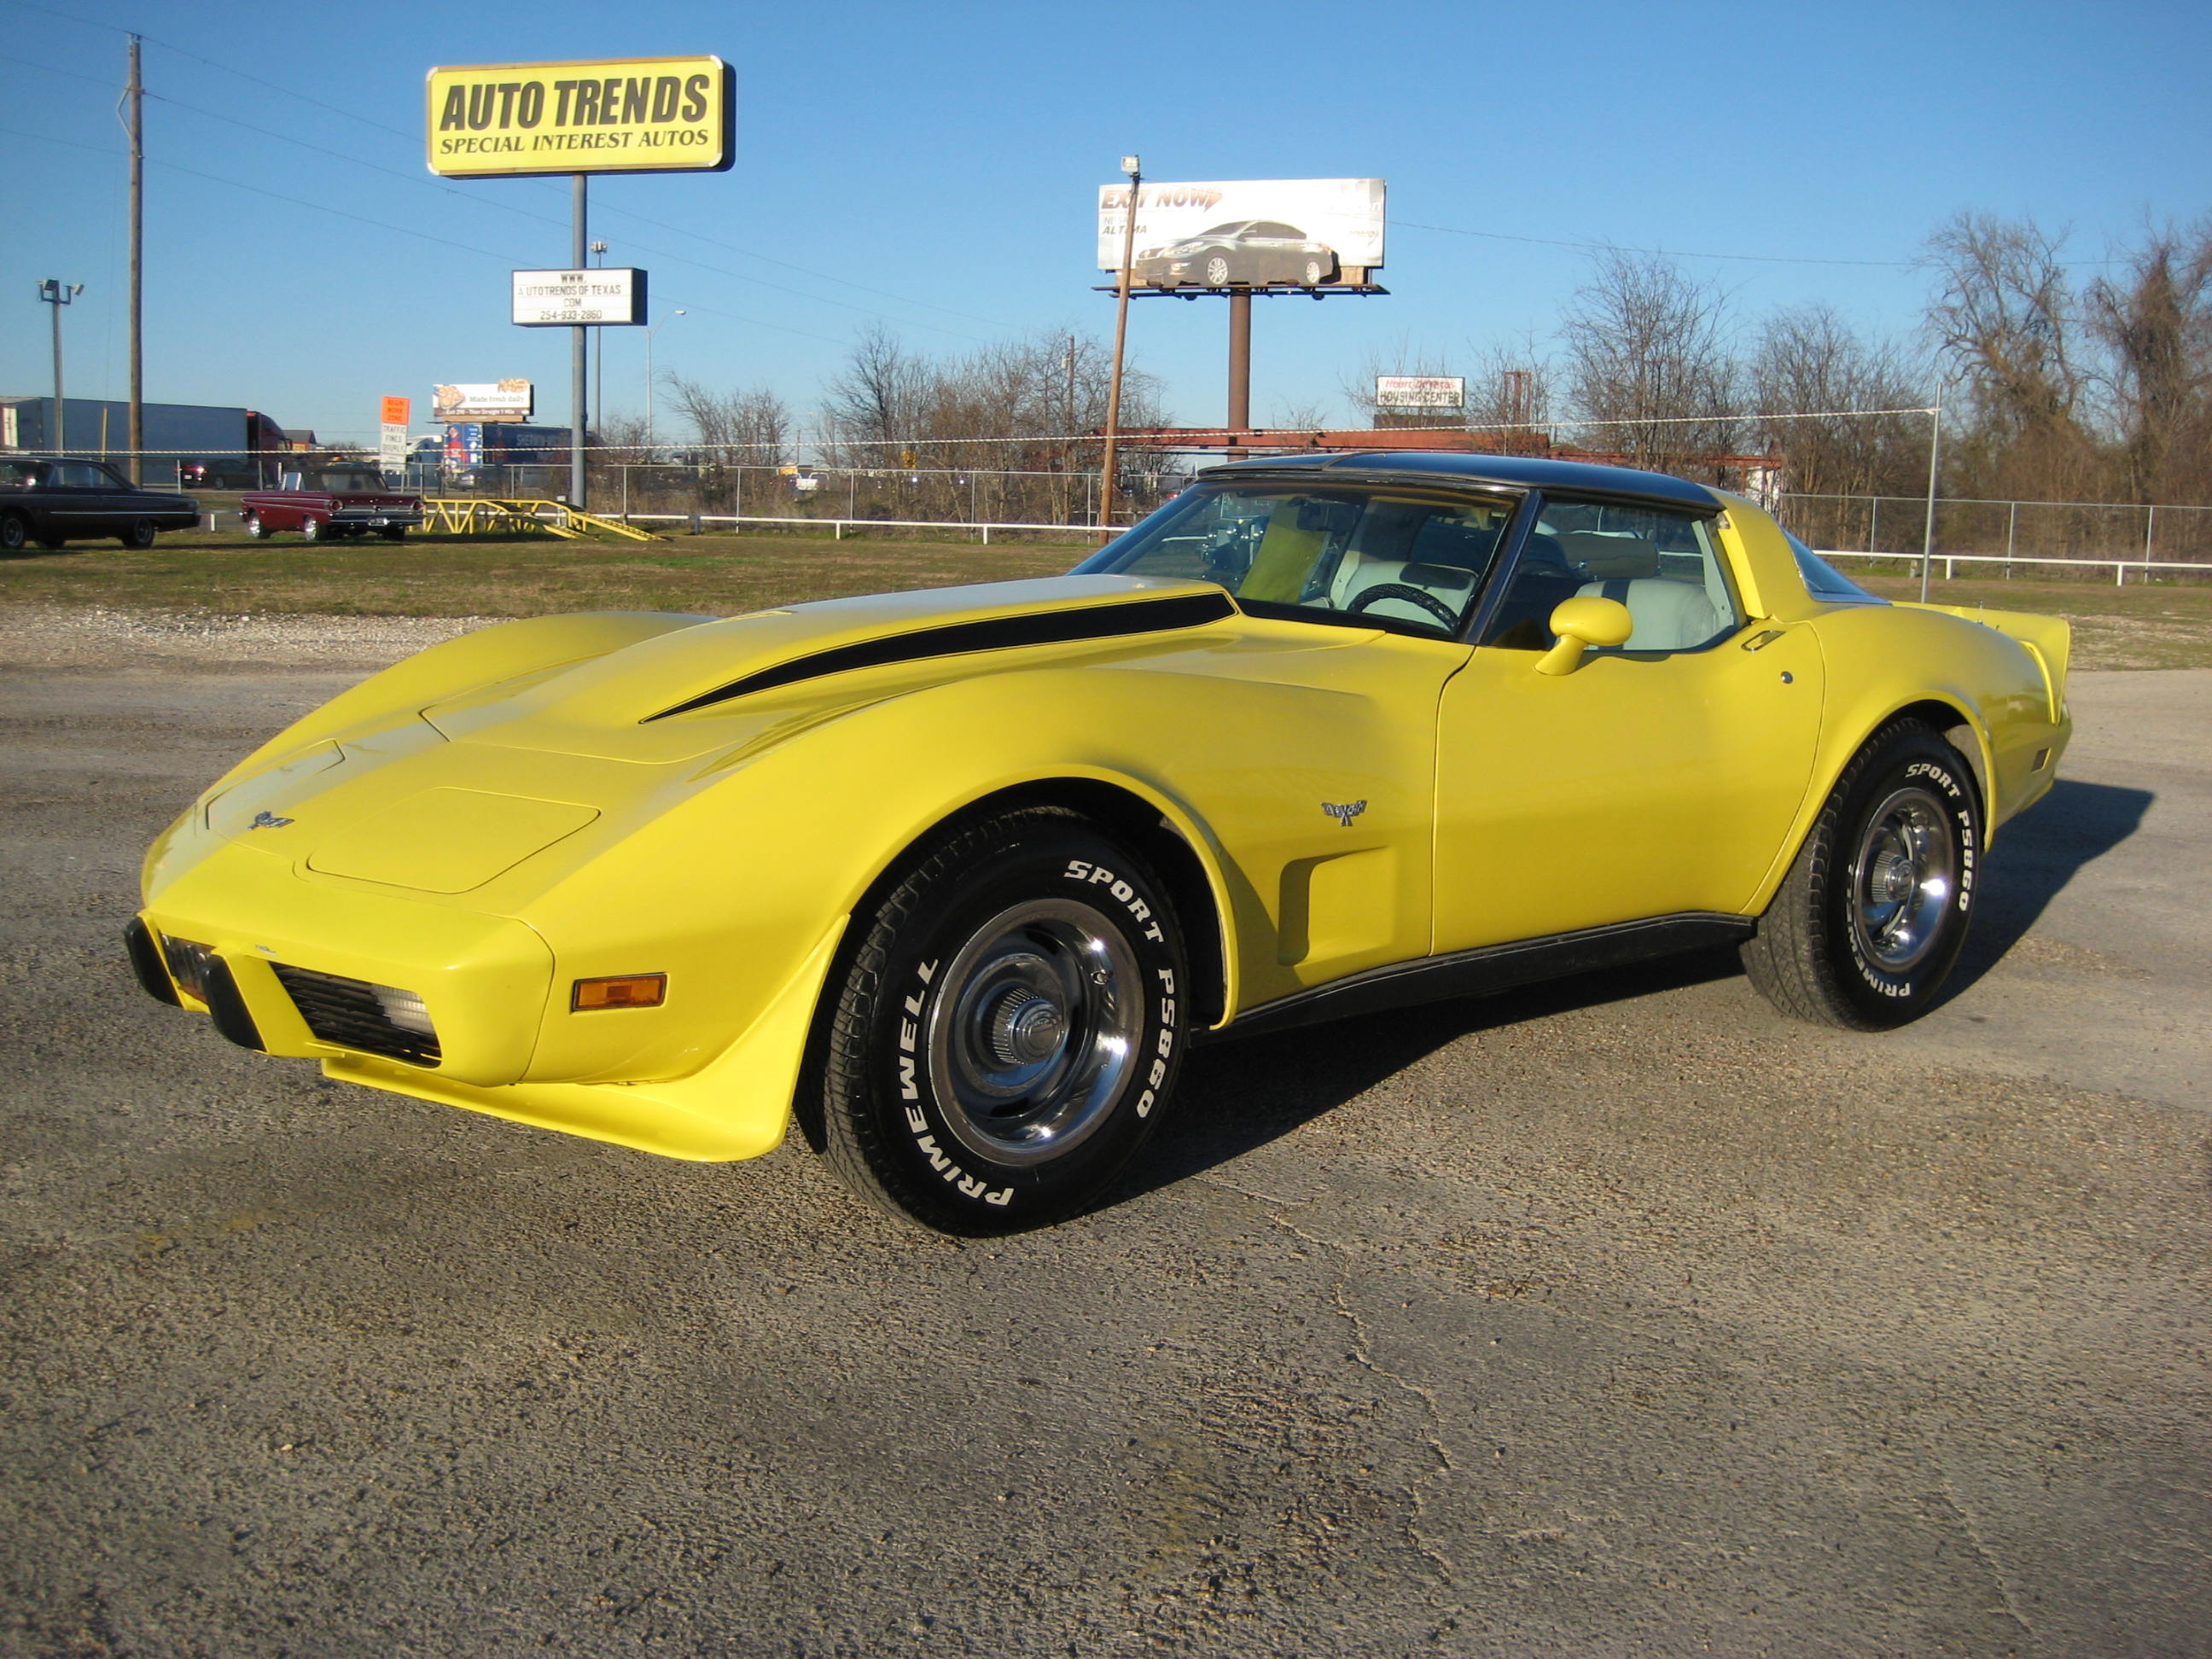 1979 Corvette Autotrends